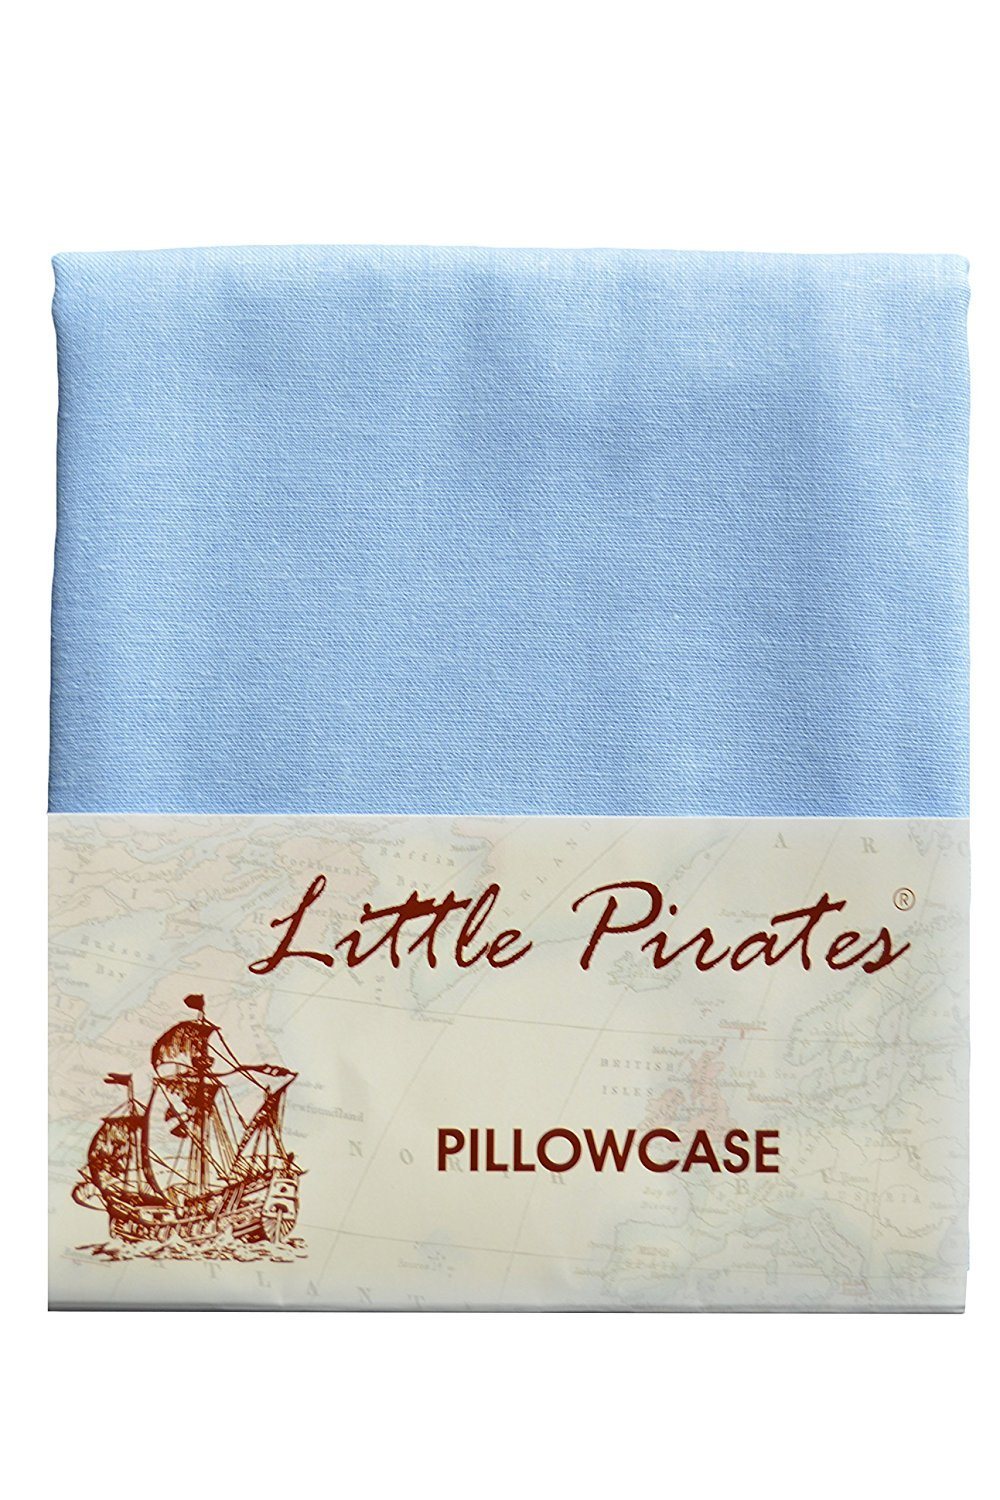 Brand New Baby Cot Bed Pillow Case 60 x 40 - 100% Cotton - Blue Little Pirates